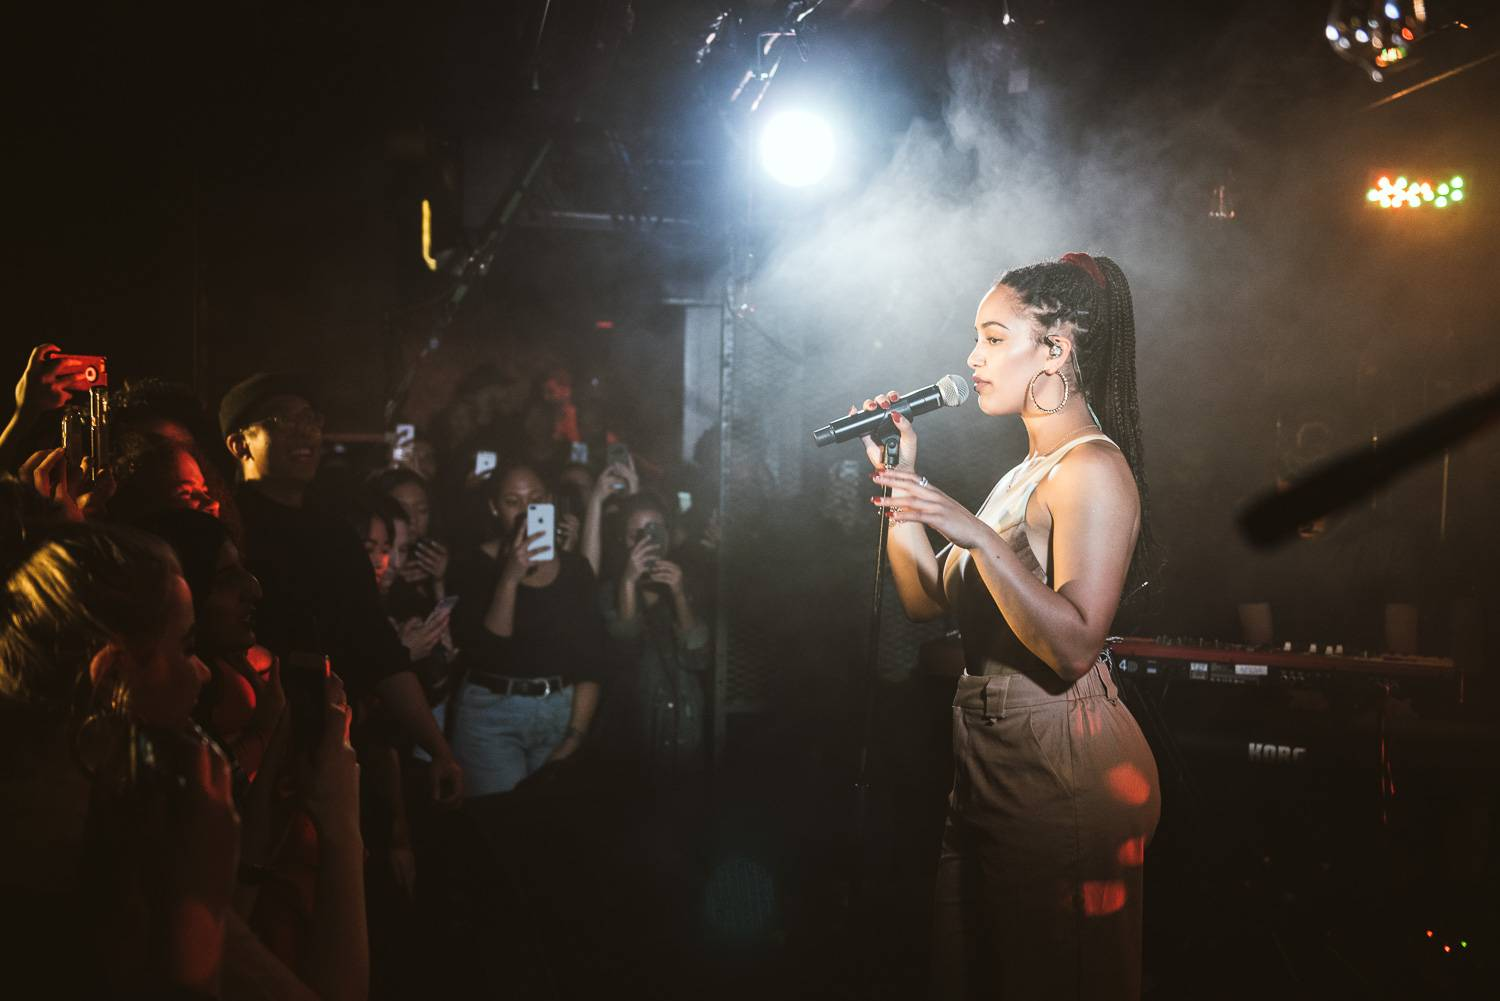 Jorja Smith at the Biltmore Cabaret, Vancouver, April 28 2018. Pavel Boiko photo.